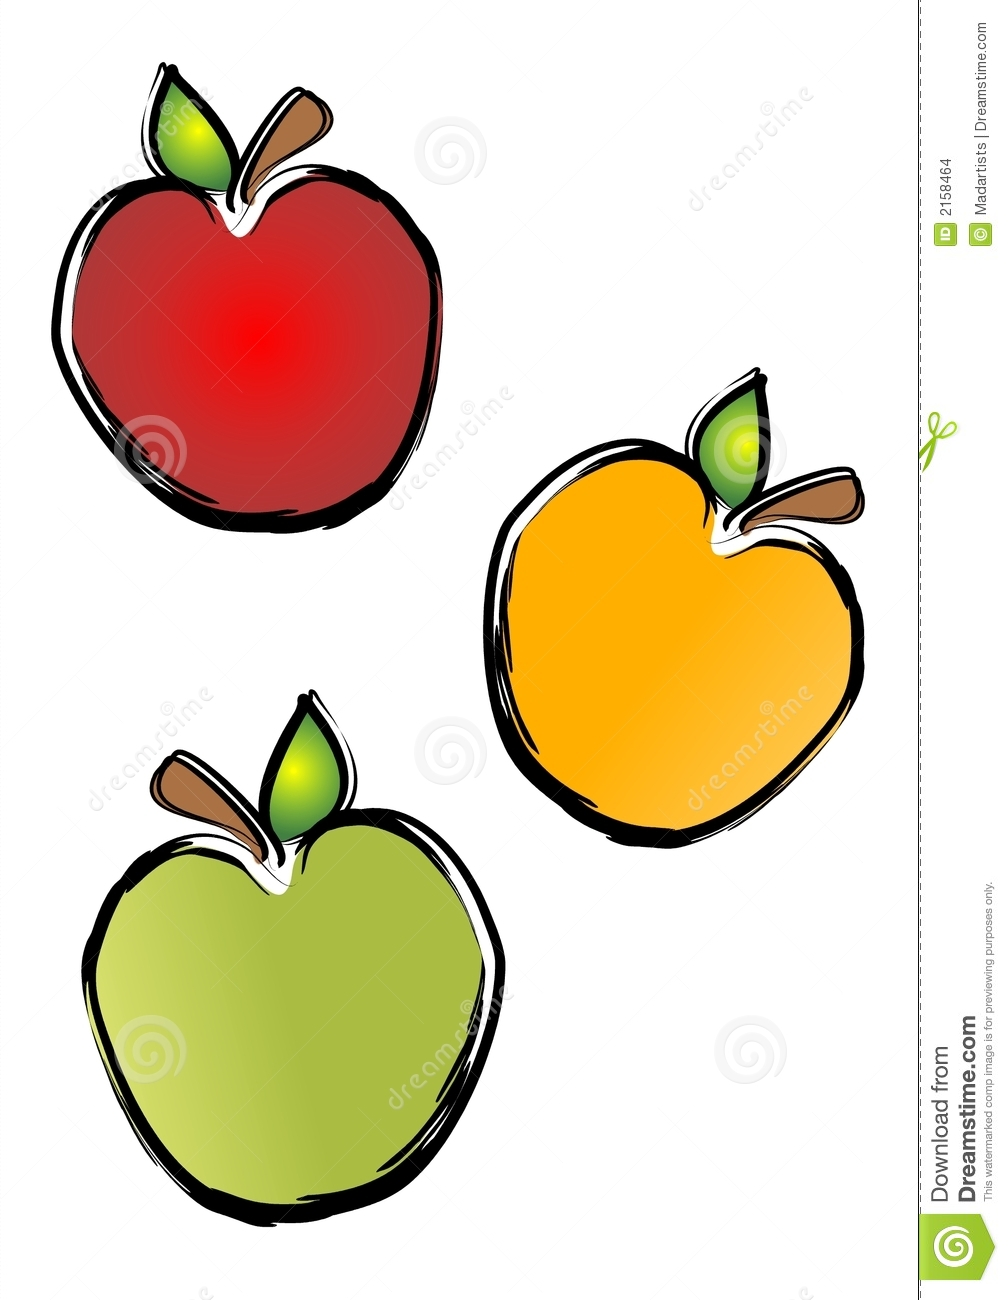 Apple superman clipart clip transparent download Apple superman clipart - ClipartFest clip transparent download